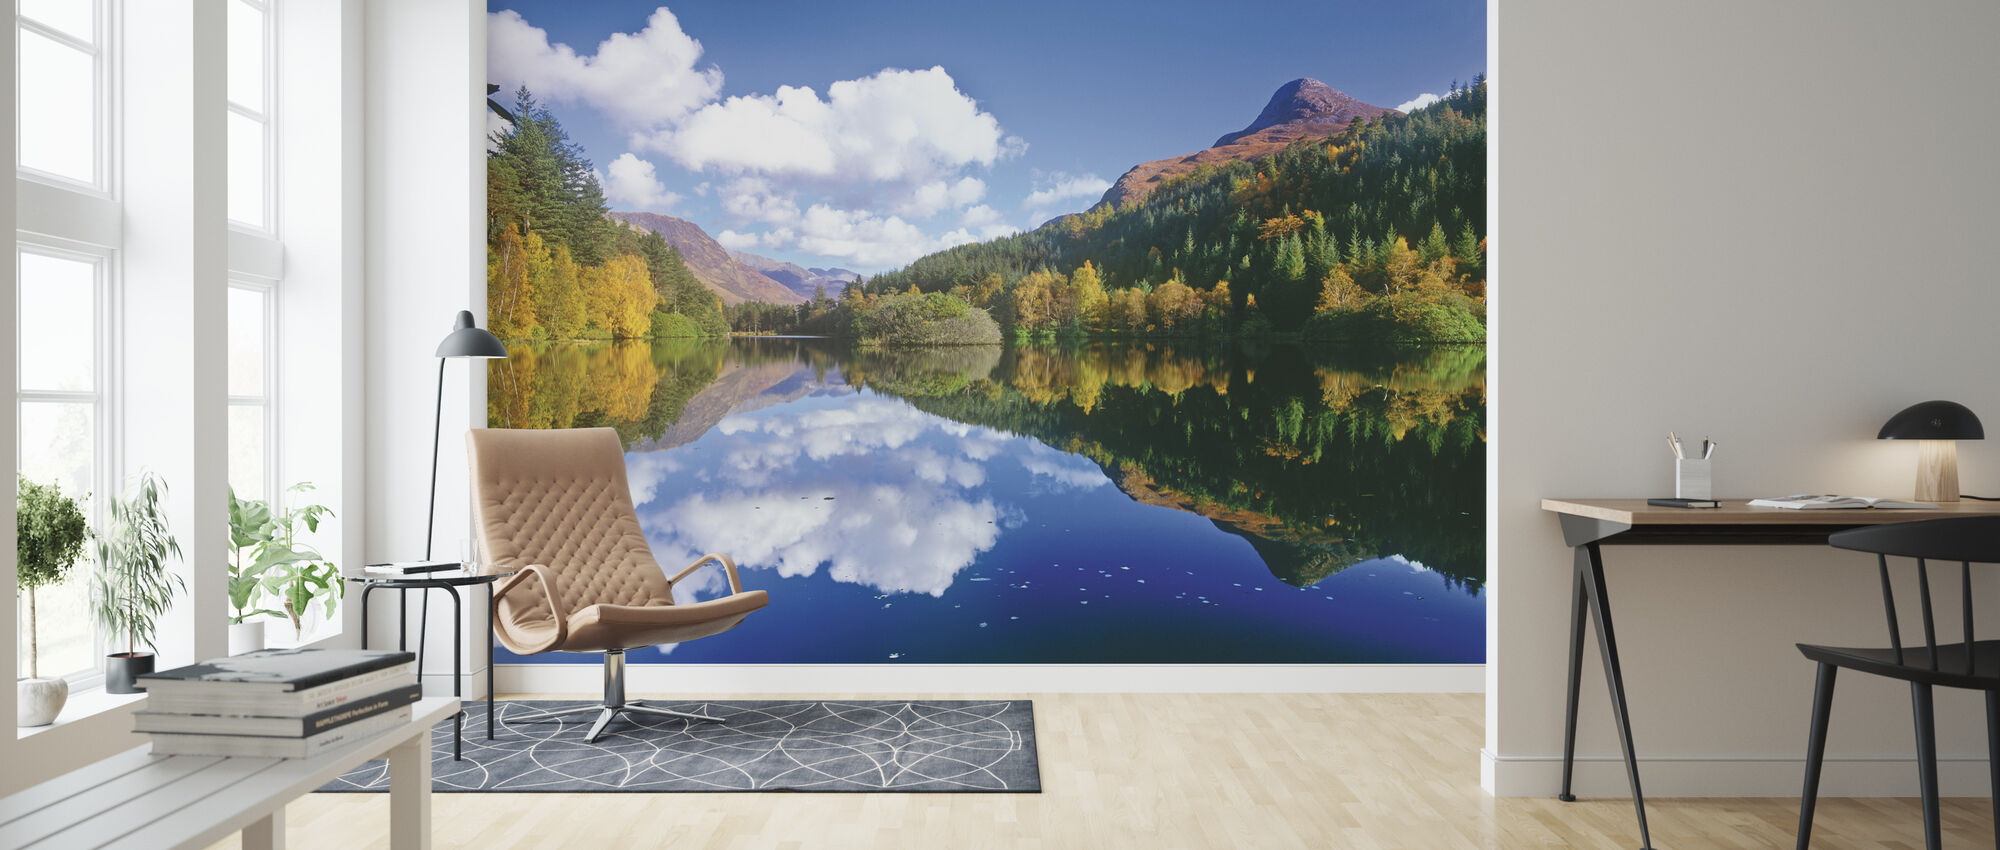 Glencoe Lochan, Scotland - Wallpaper - Living Room